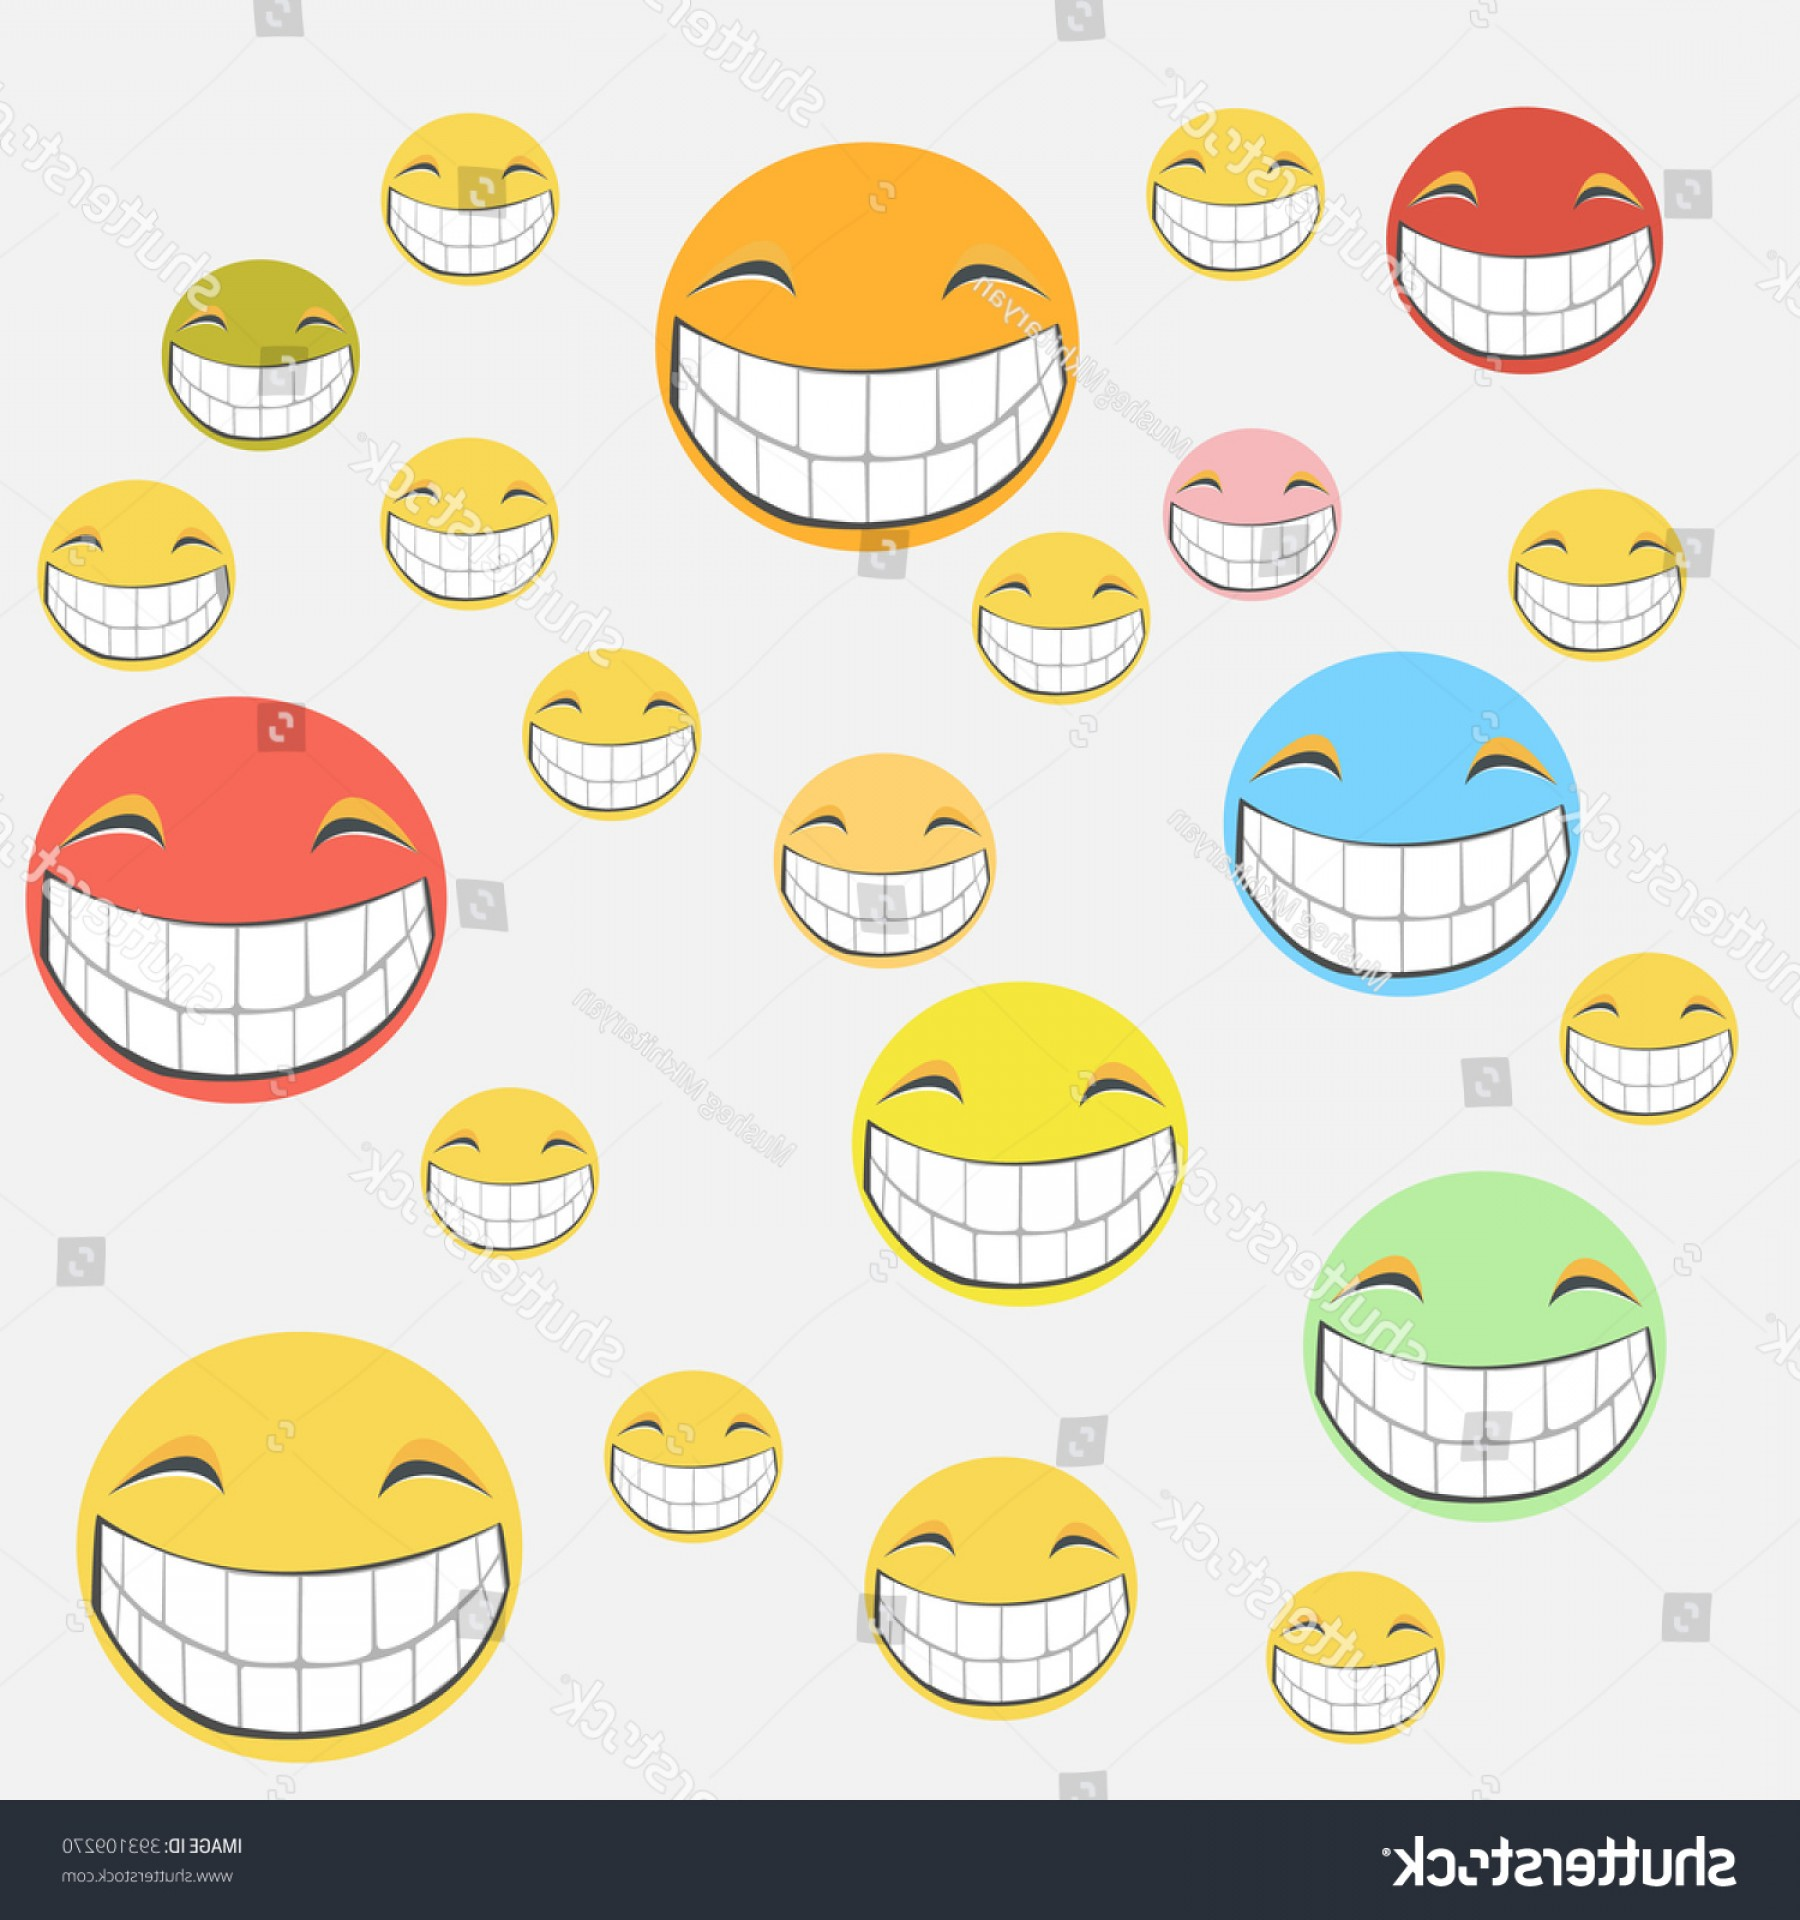 IPhone Emoji Vectors Van: Smiley On Day Laughter Vector Graphics